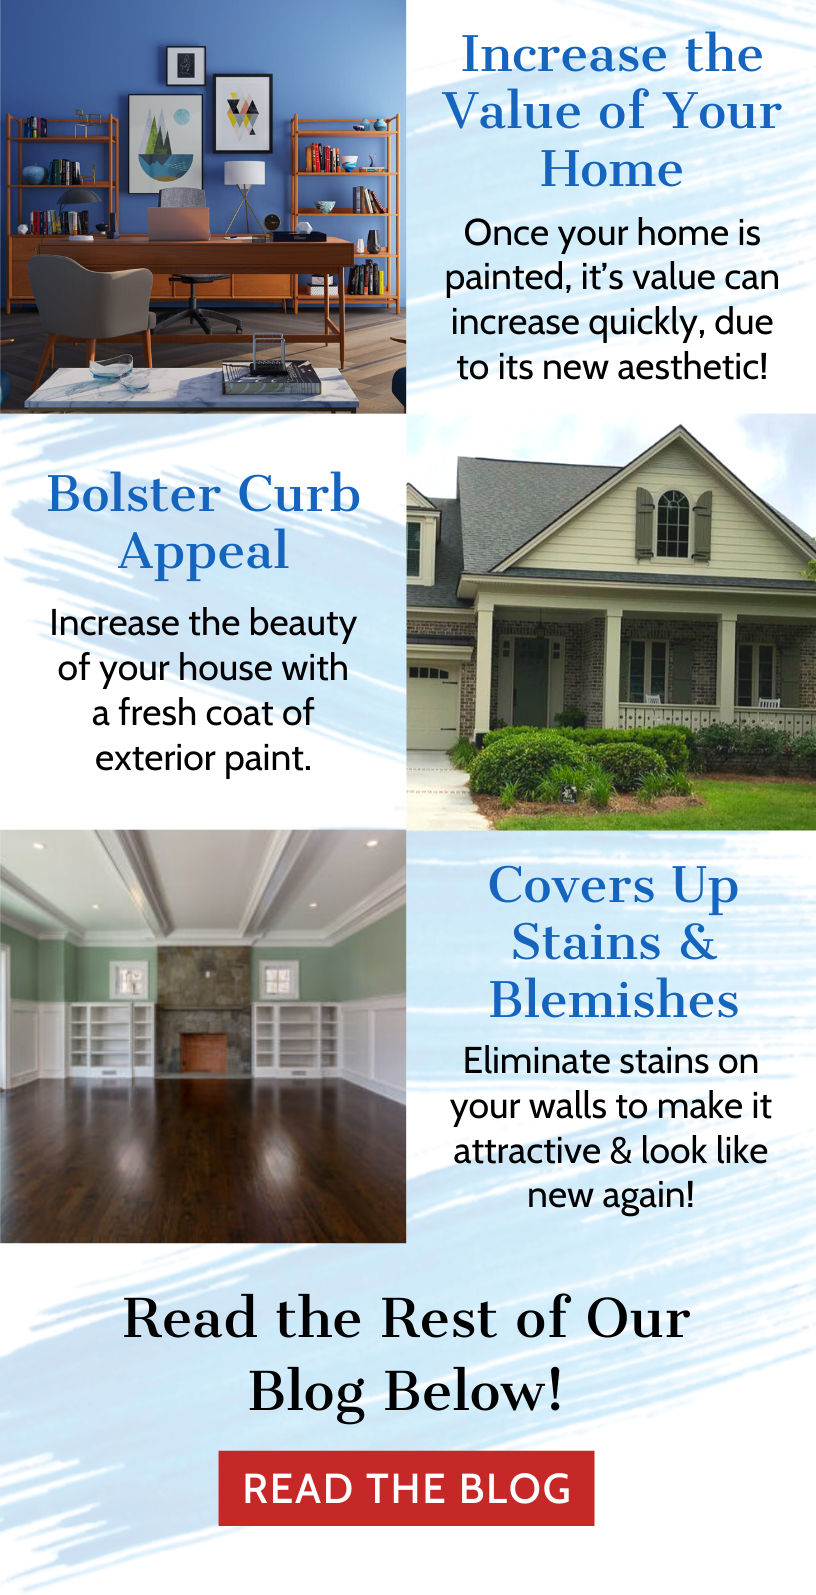 Reasons To Paint Your Home! 🏠 2